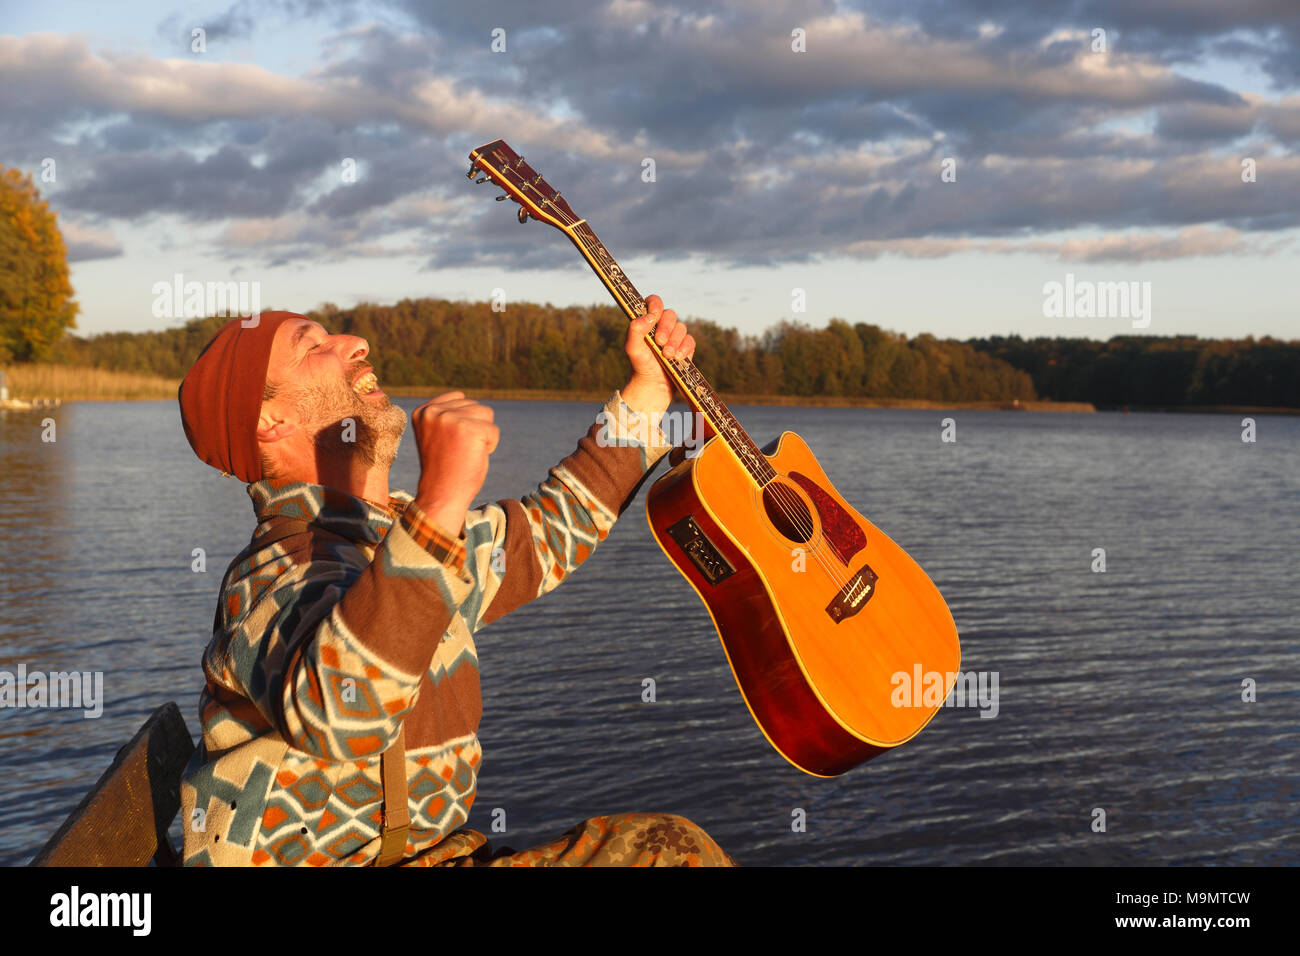 Man plays guitar on a boat landing stage at the lake and is pleased, Mecklenburg Lake District, Mecklenburg-Western Pomerania - Stock Image